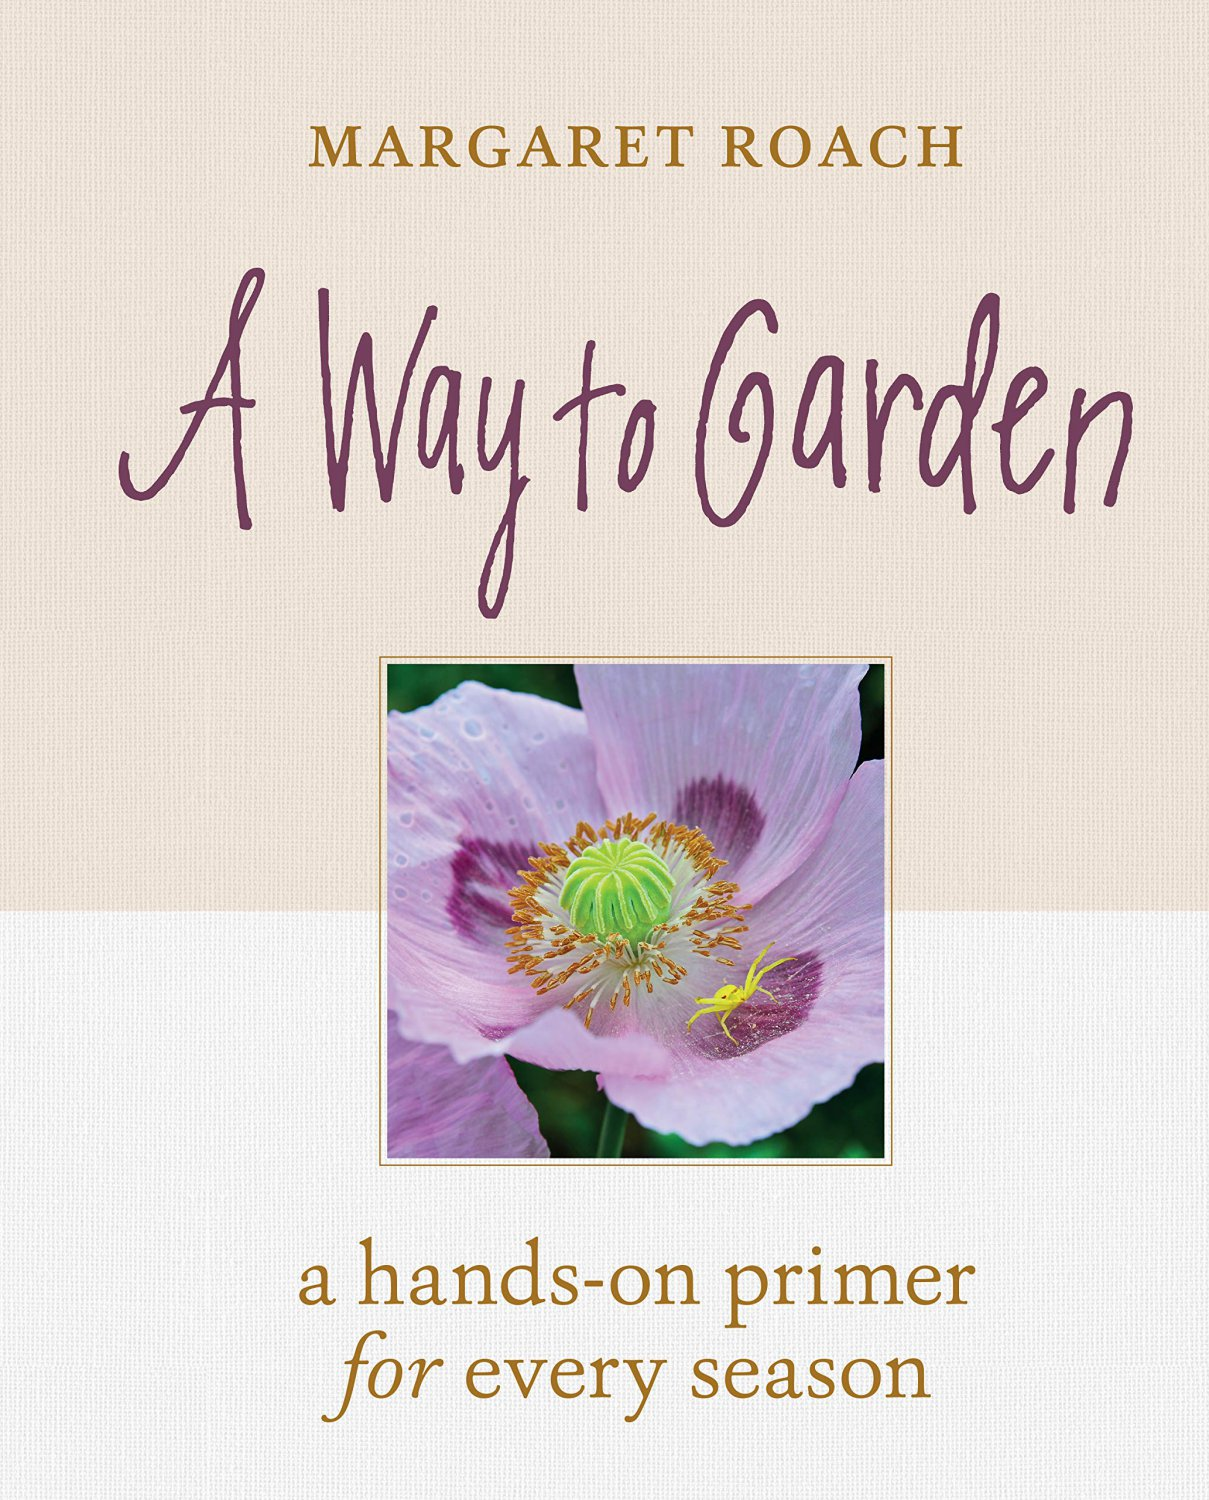 A Way to Garden: A Hands-On Primer for Every Season Hardcover  by Margaret Roach